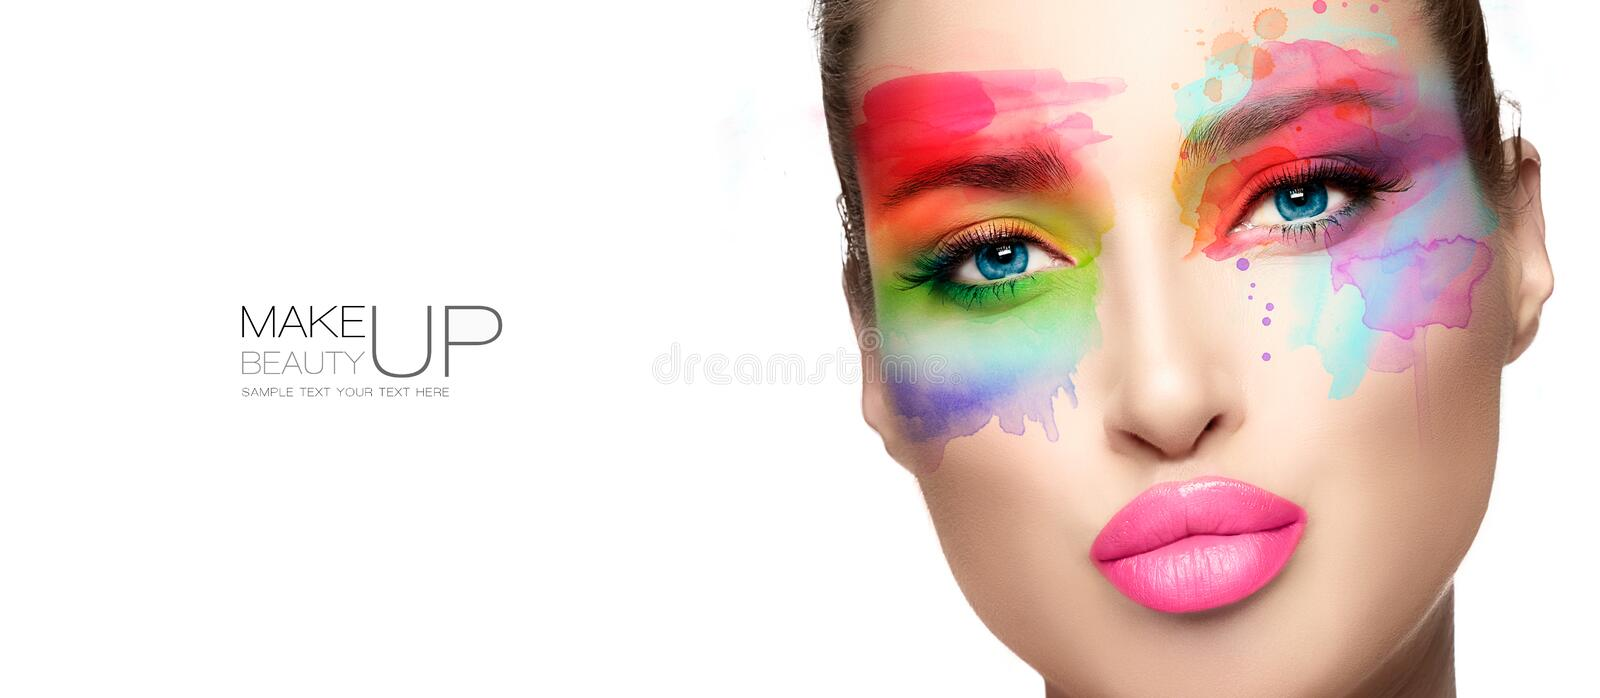 Beauty make up. High fashion model with creative colorful makeup royalty free stock images